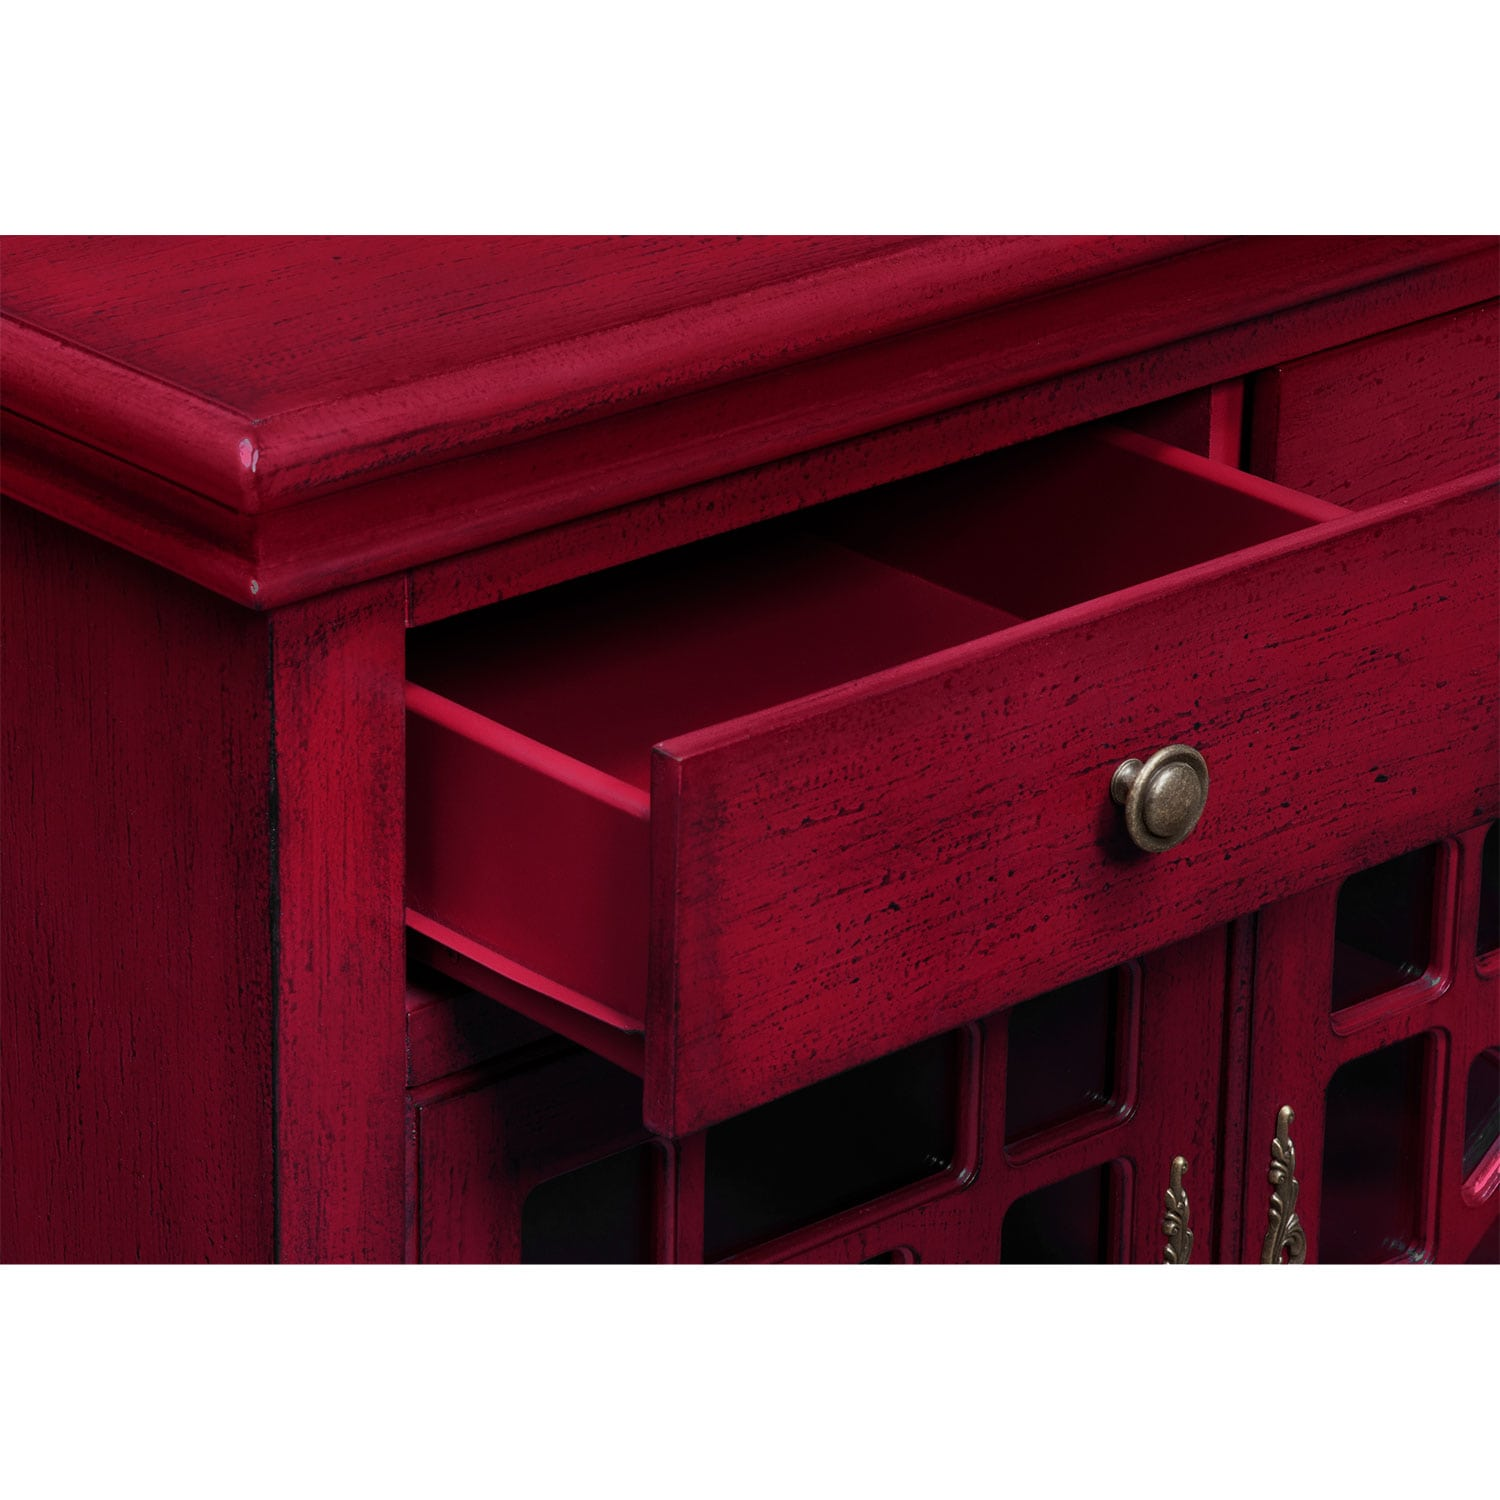 American Accents Furniture Nc: Grenoble Accent Cabinet - Red